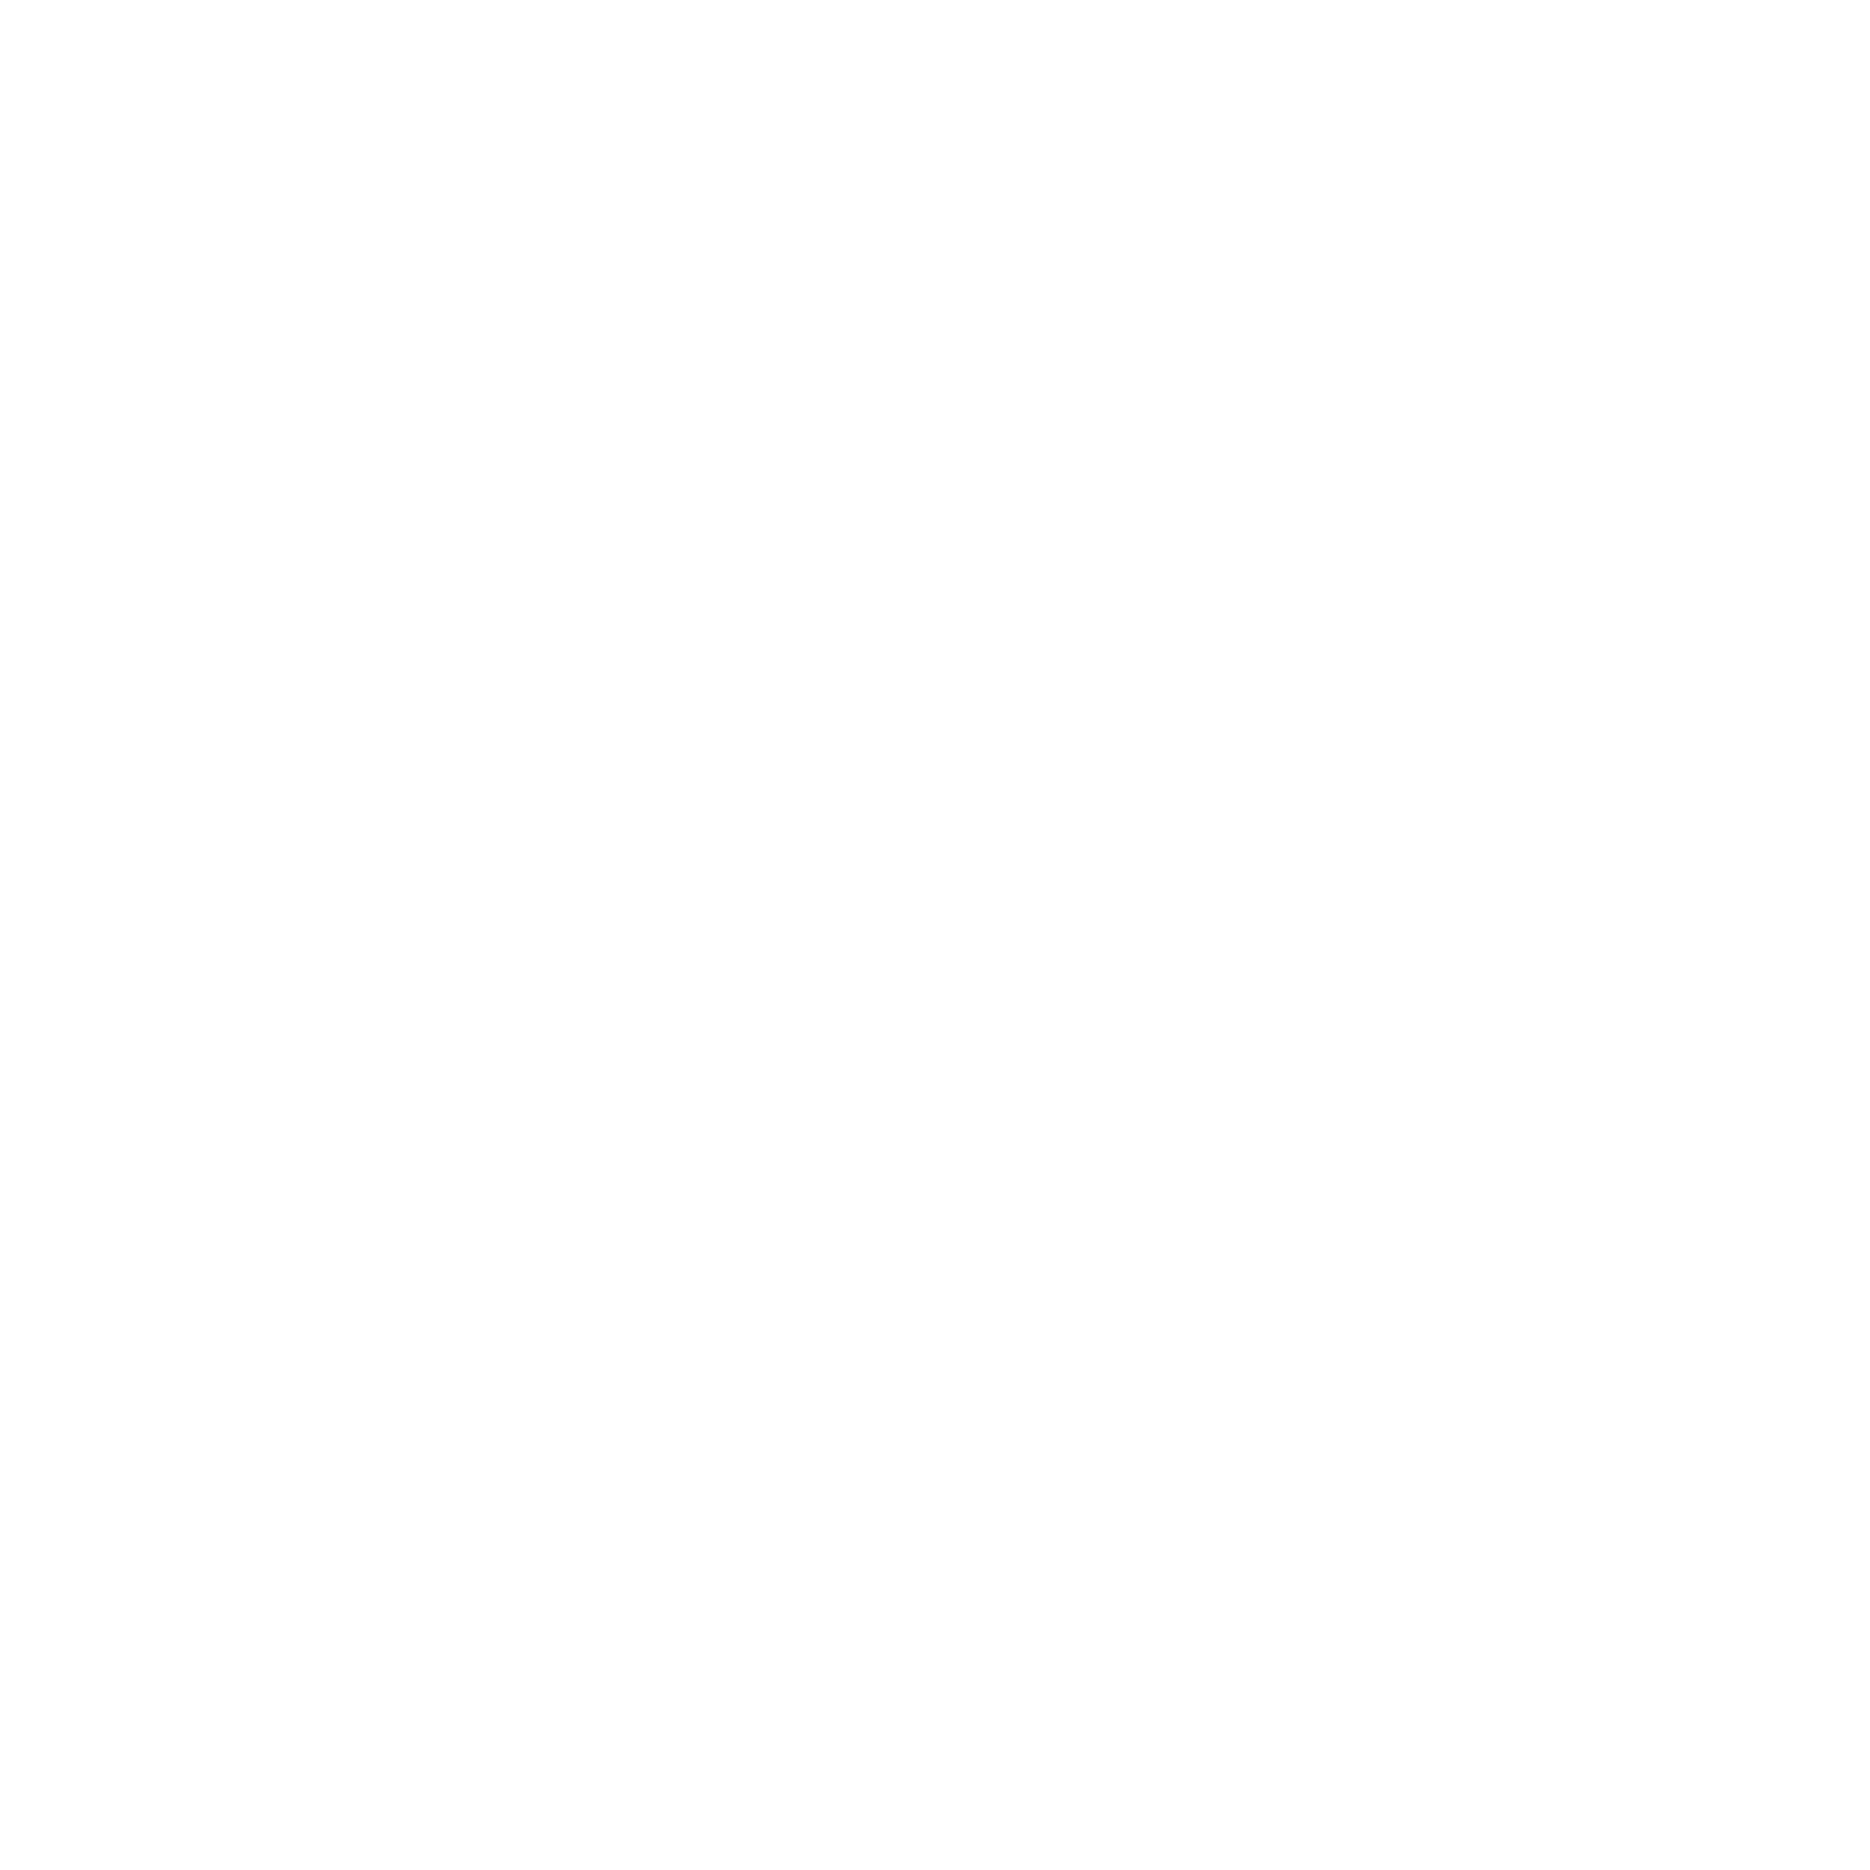 Squarespace Circle — Member   Squarespace Circle is a program designed to support, inspire, and engage the community of creatives, developers, and designers who use Squarespace to build beautiful websites for themselves and their clients.